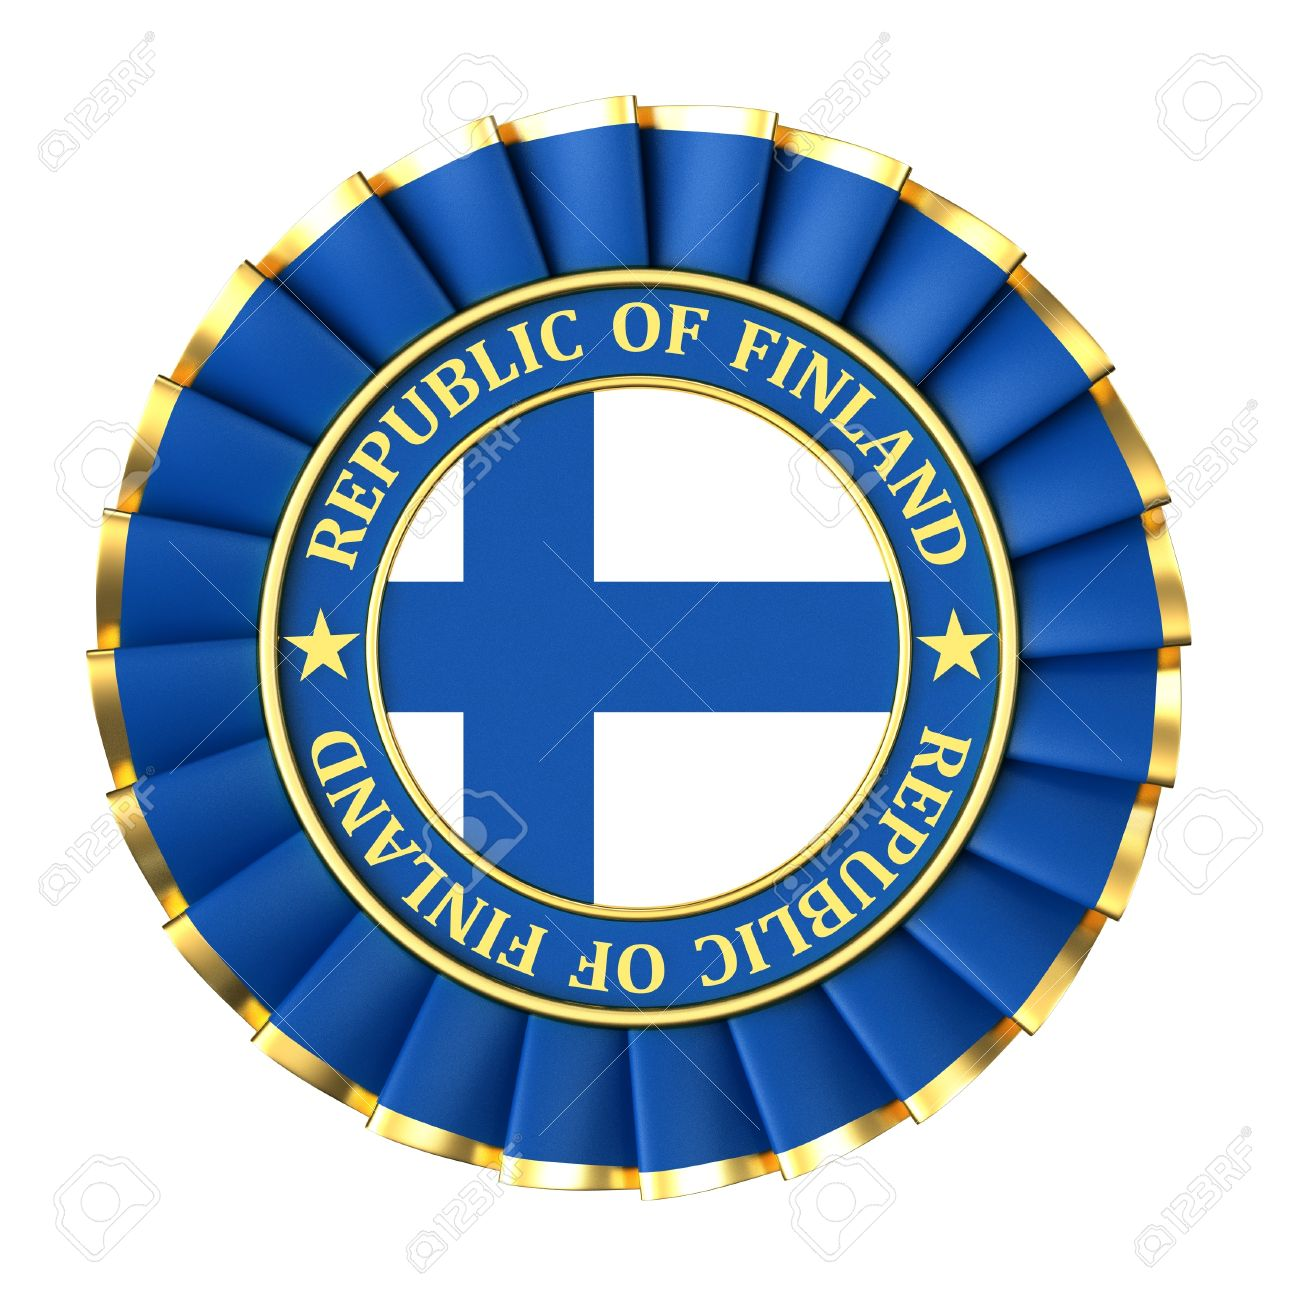 Ribbon Award With The Symbols Of Republic Of Finland Stock Photo.